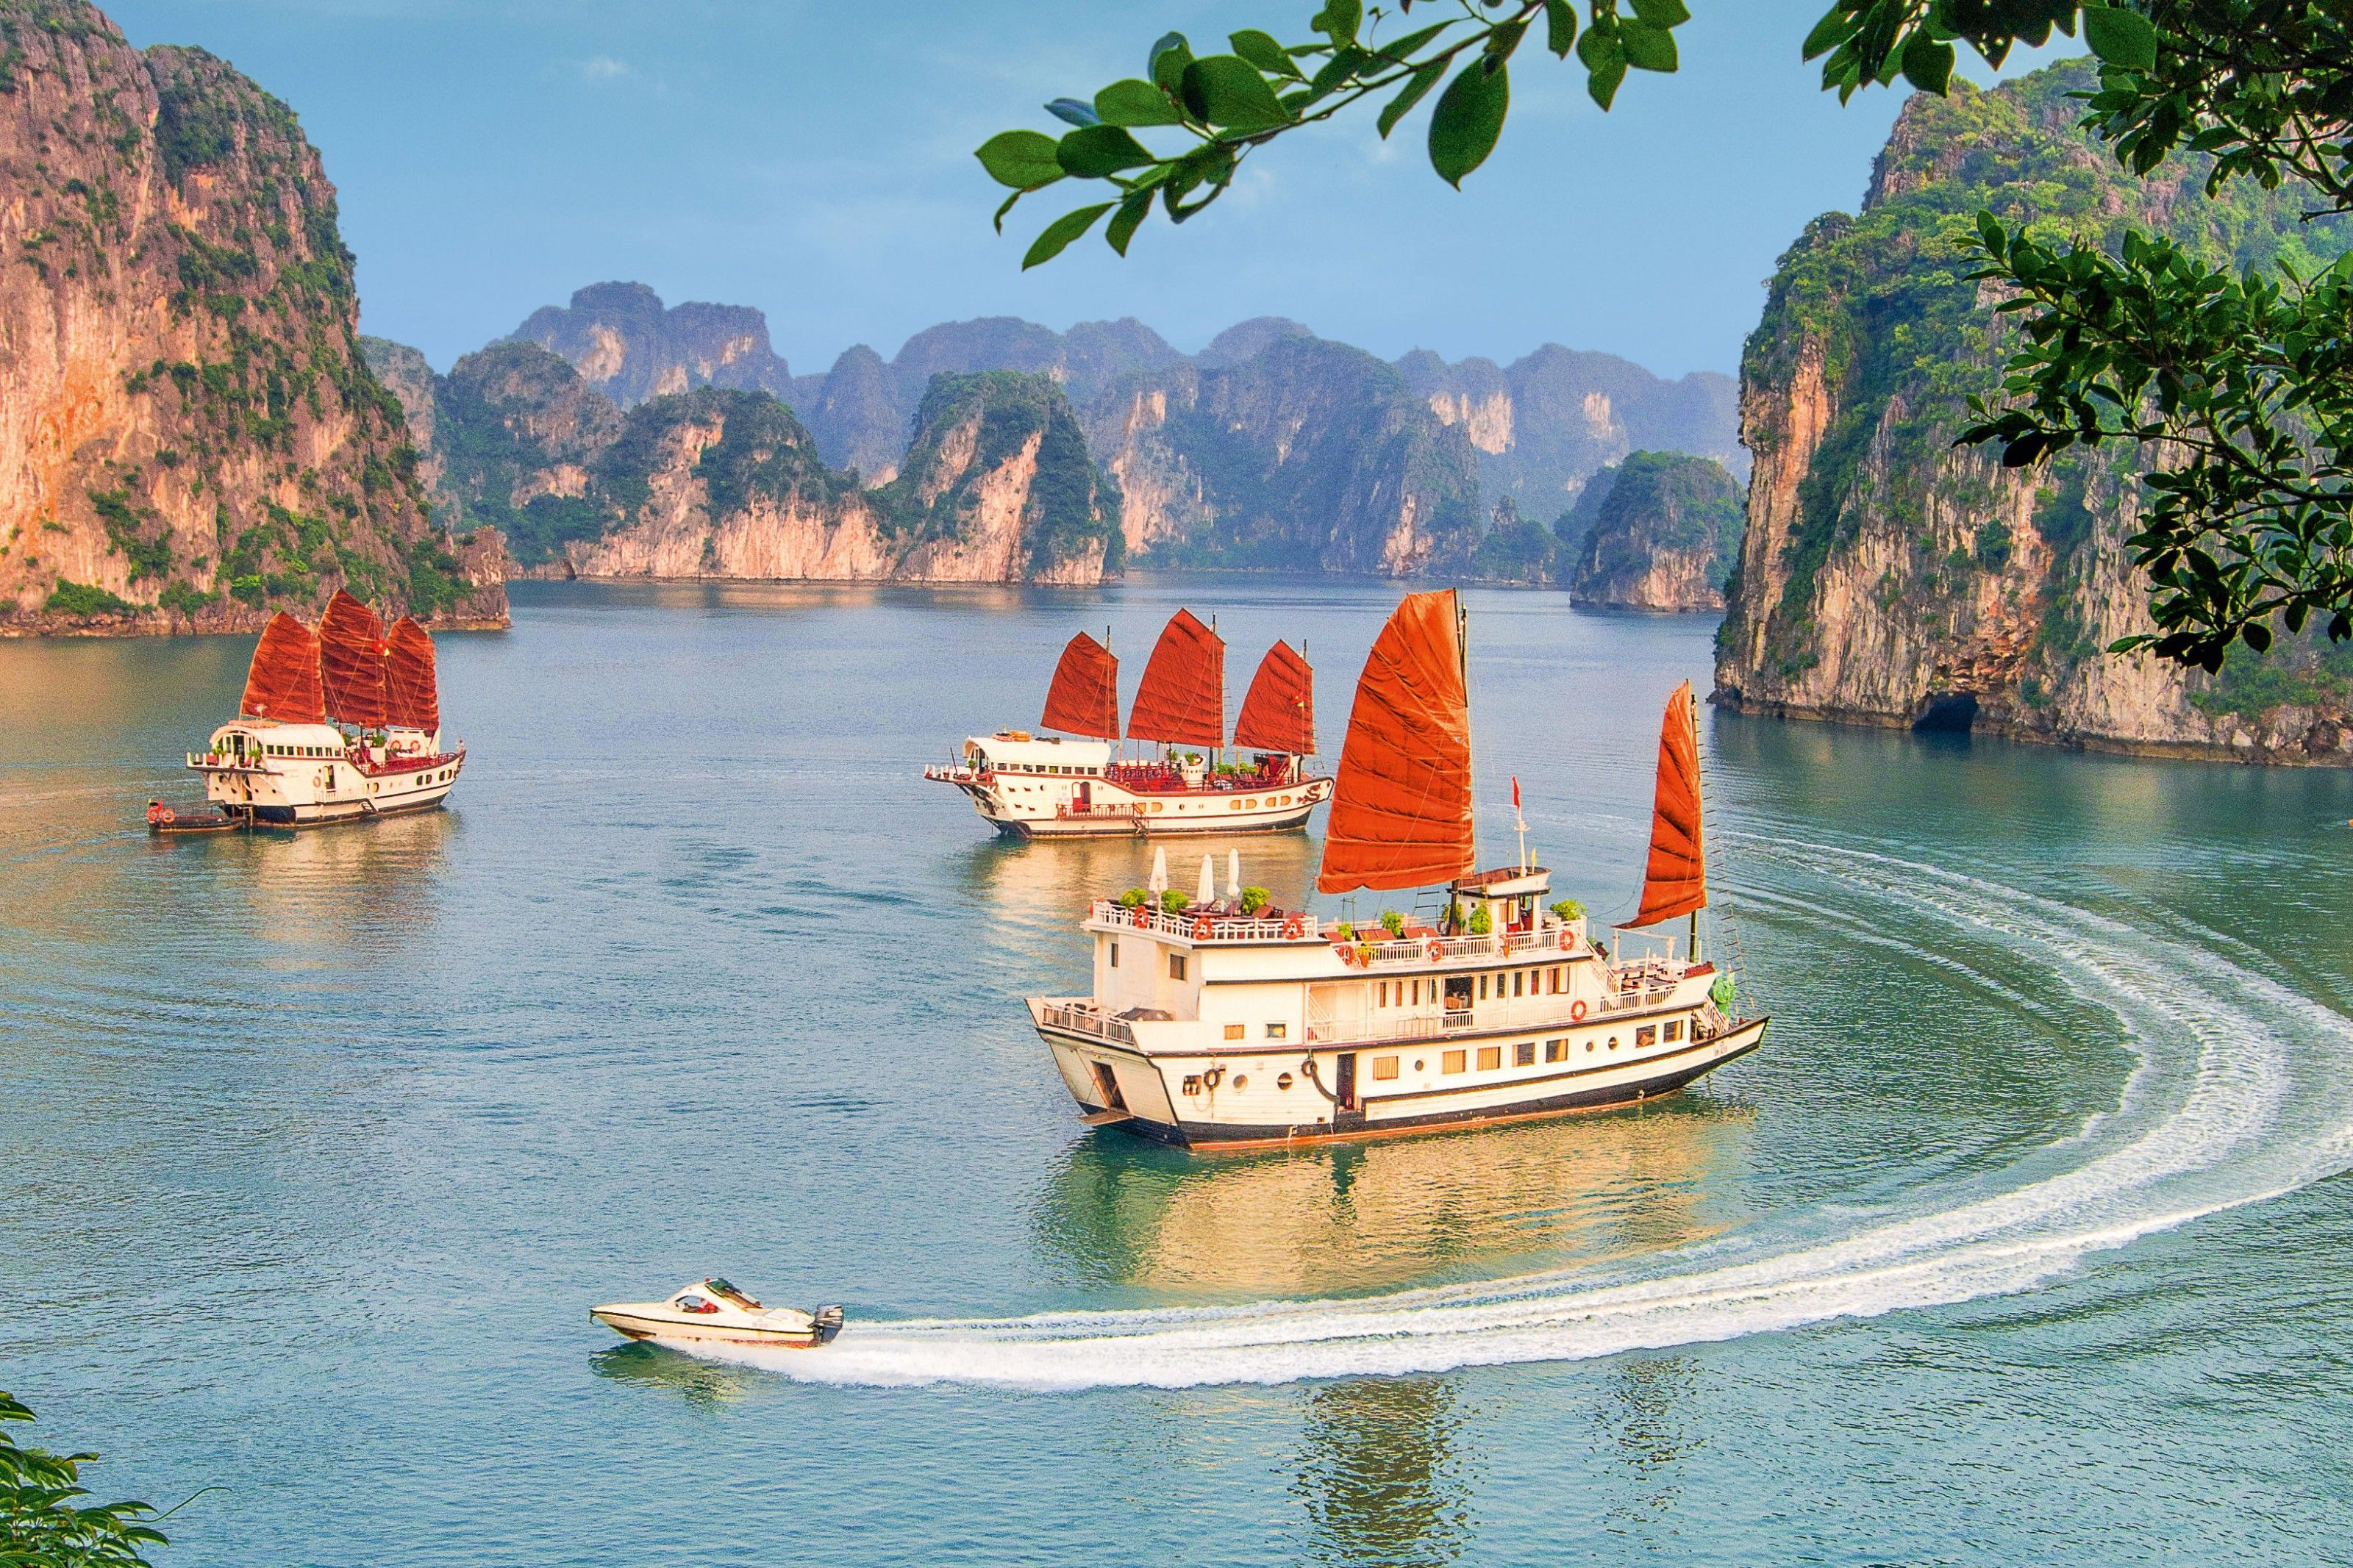 Mountains, islands and caves: exploring the highlights of Ha Long Bay